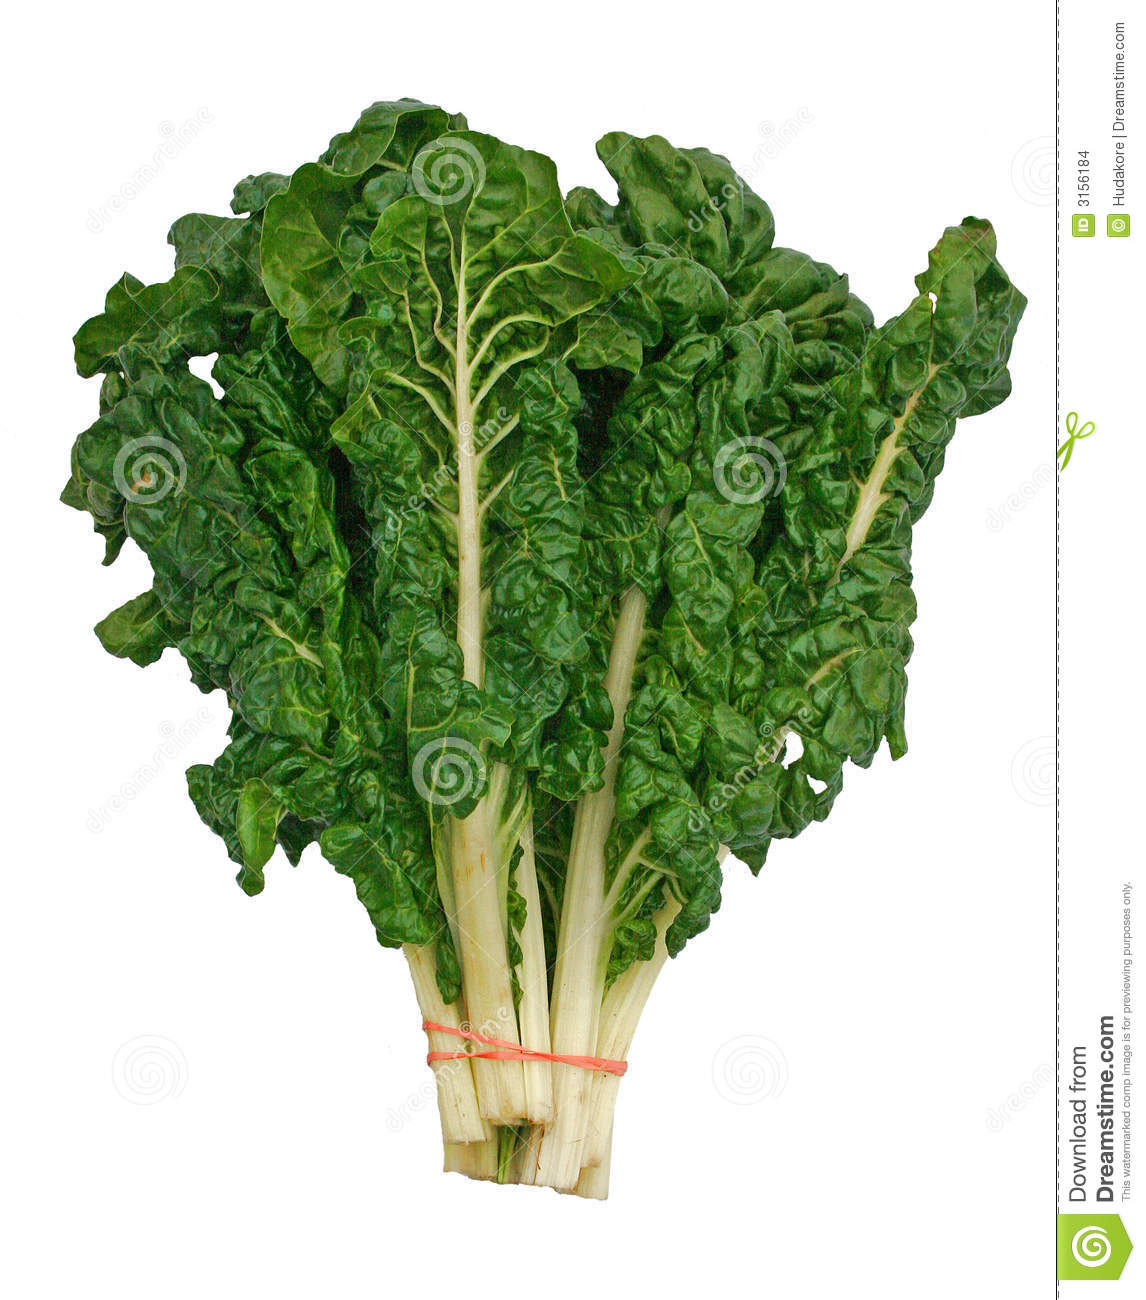 swiss chard Swiss chard (silverbeet) is one of the popular green leafy ...